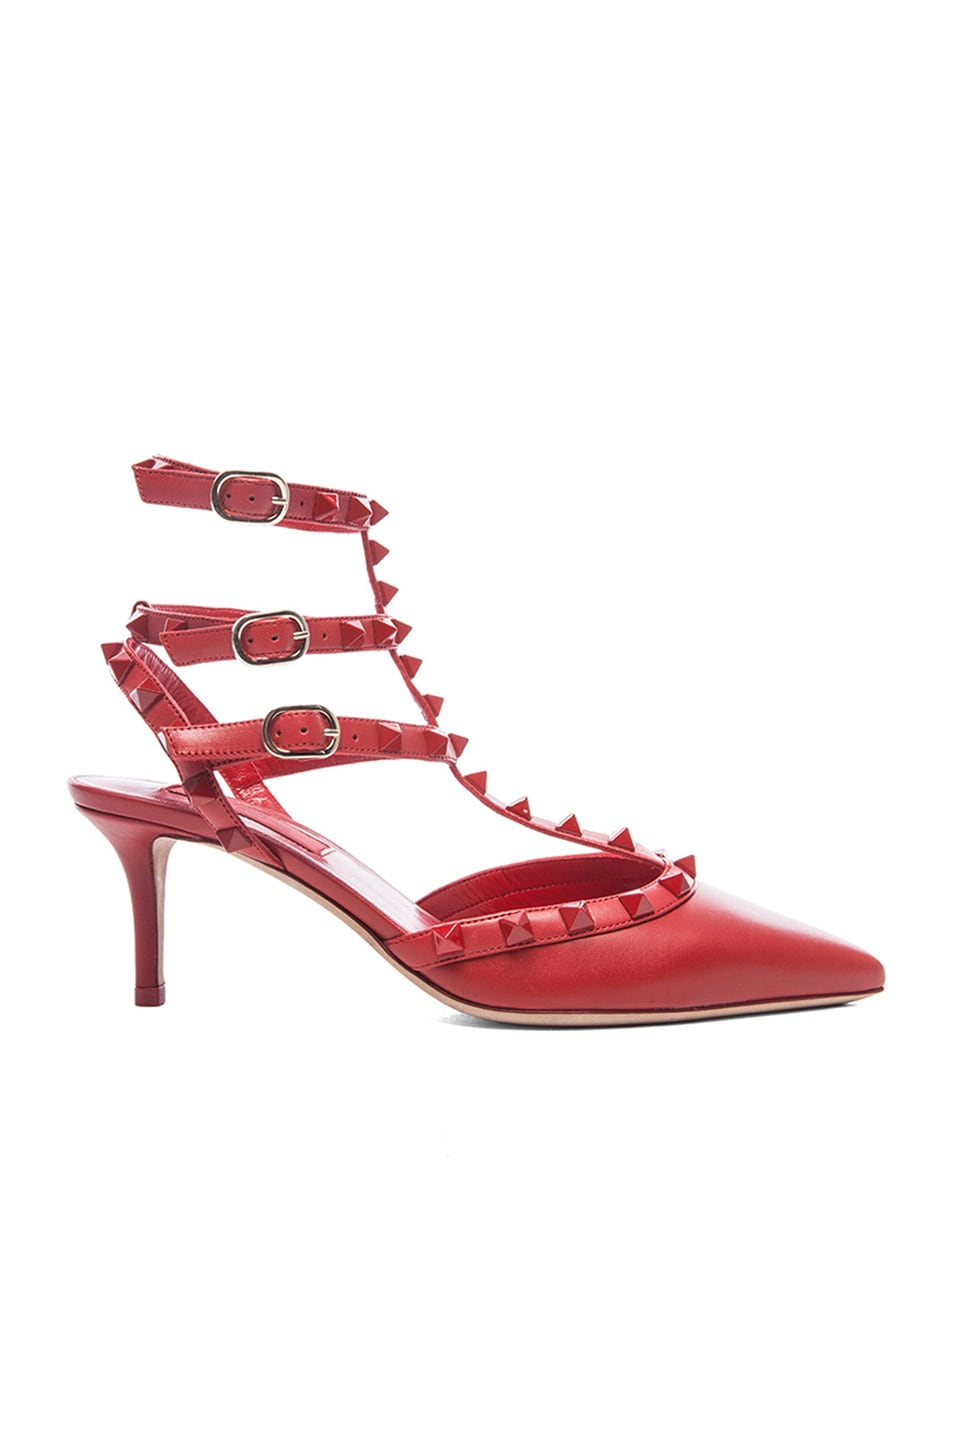 Image 1 of Valentino Rouge Rockstud Leather Slingbacks T.65 in Rosso Red